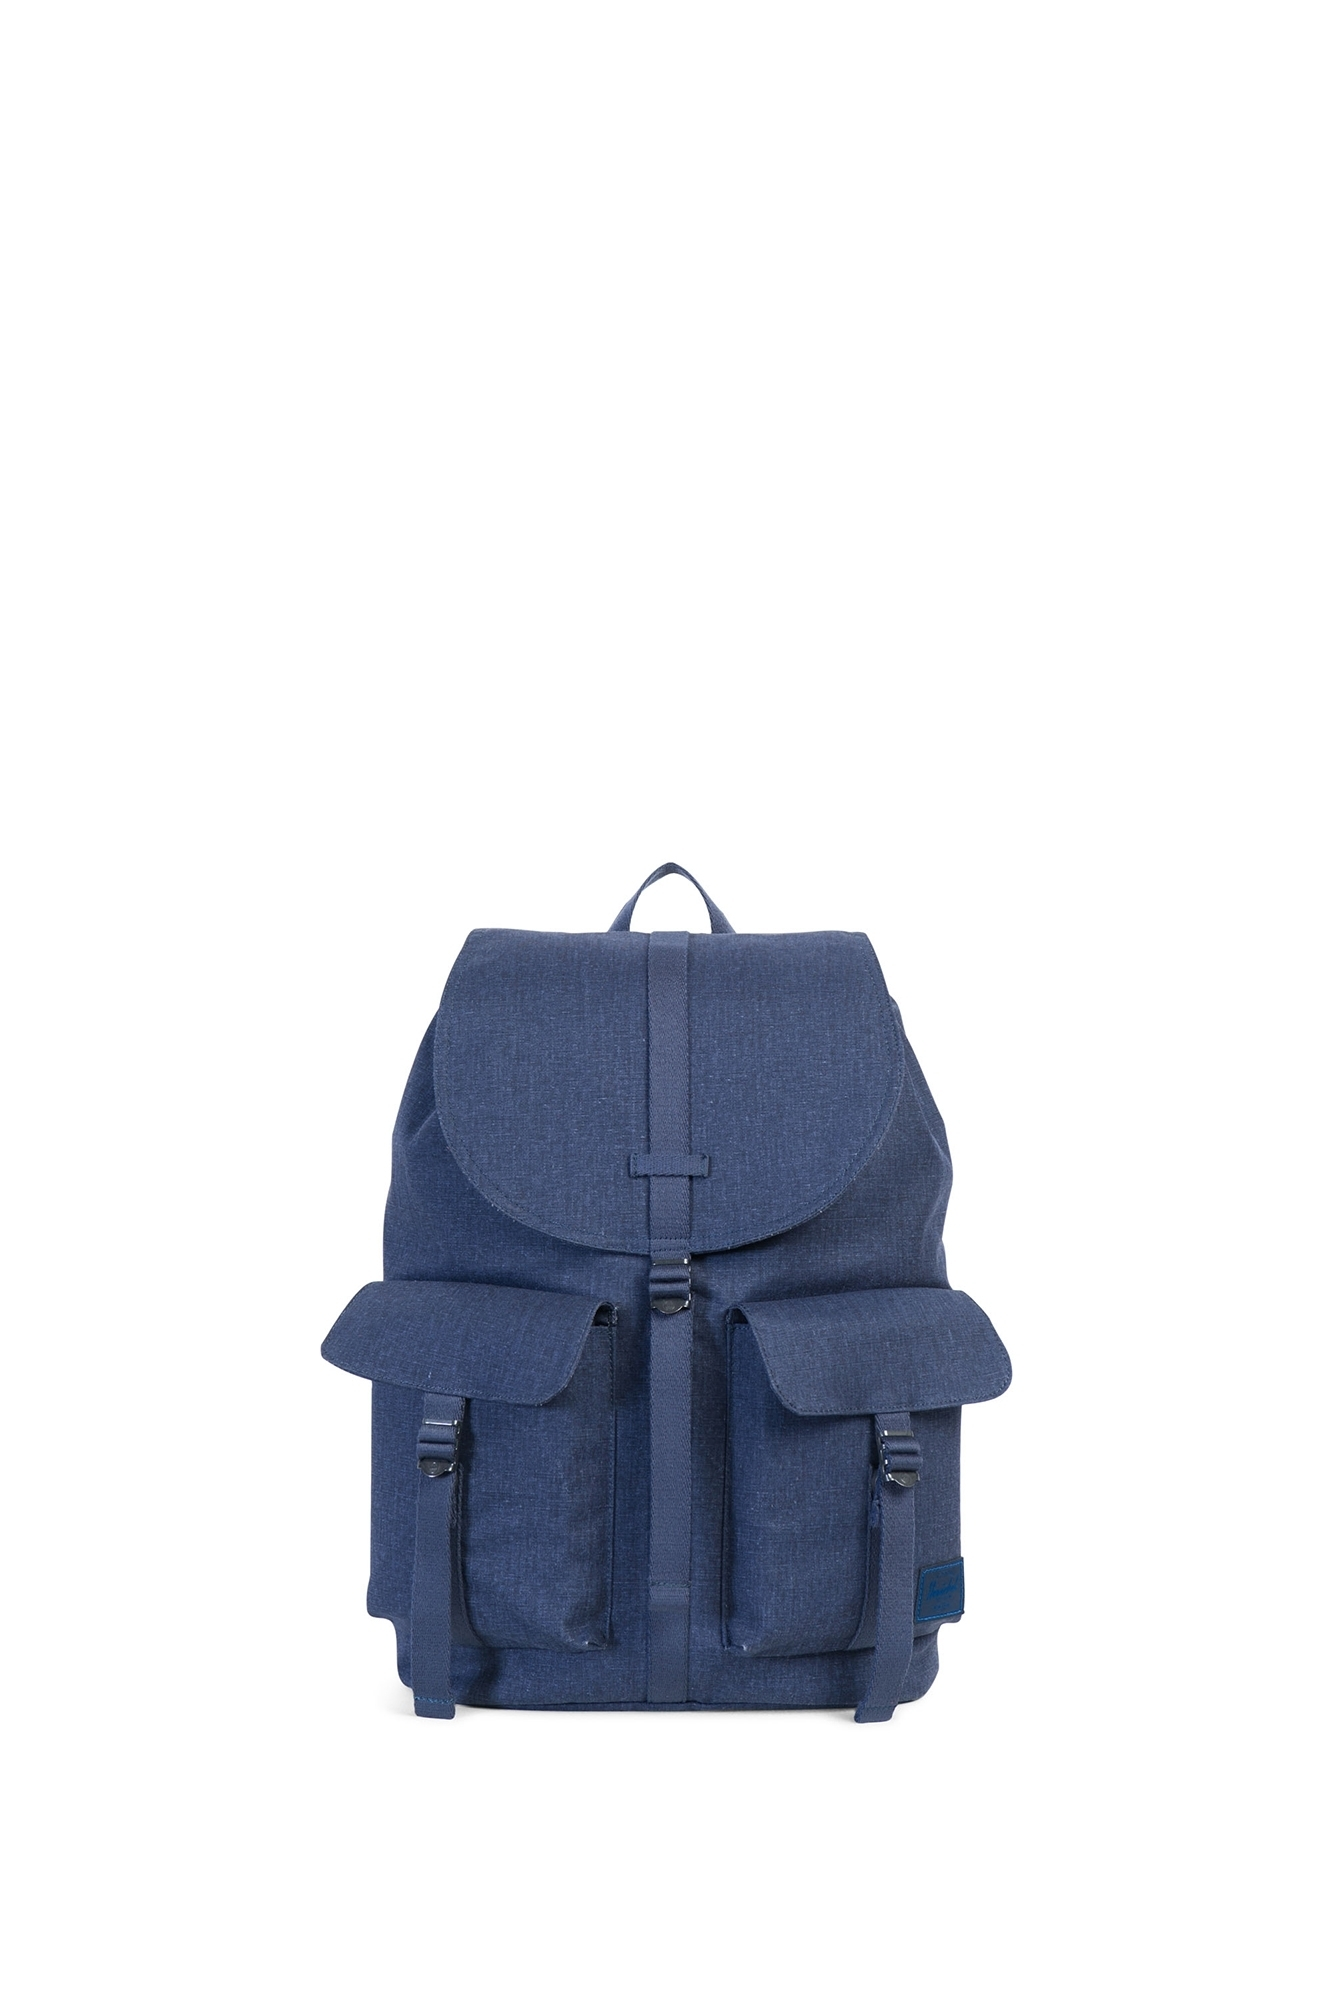 7b2cf4a017 Herschel Dawson Backpack Cotton Canvas Navy - Calibro Shop